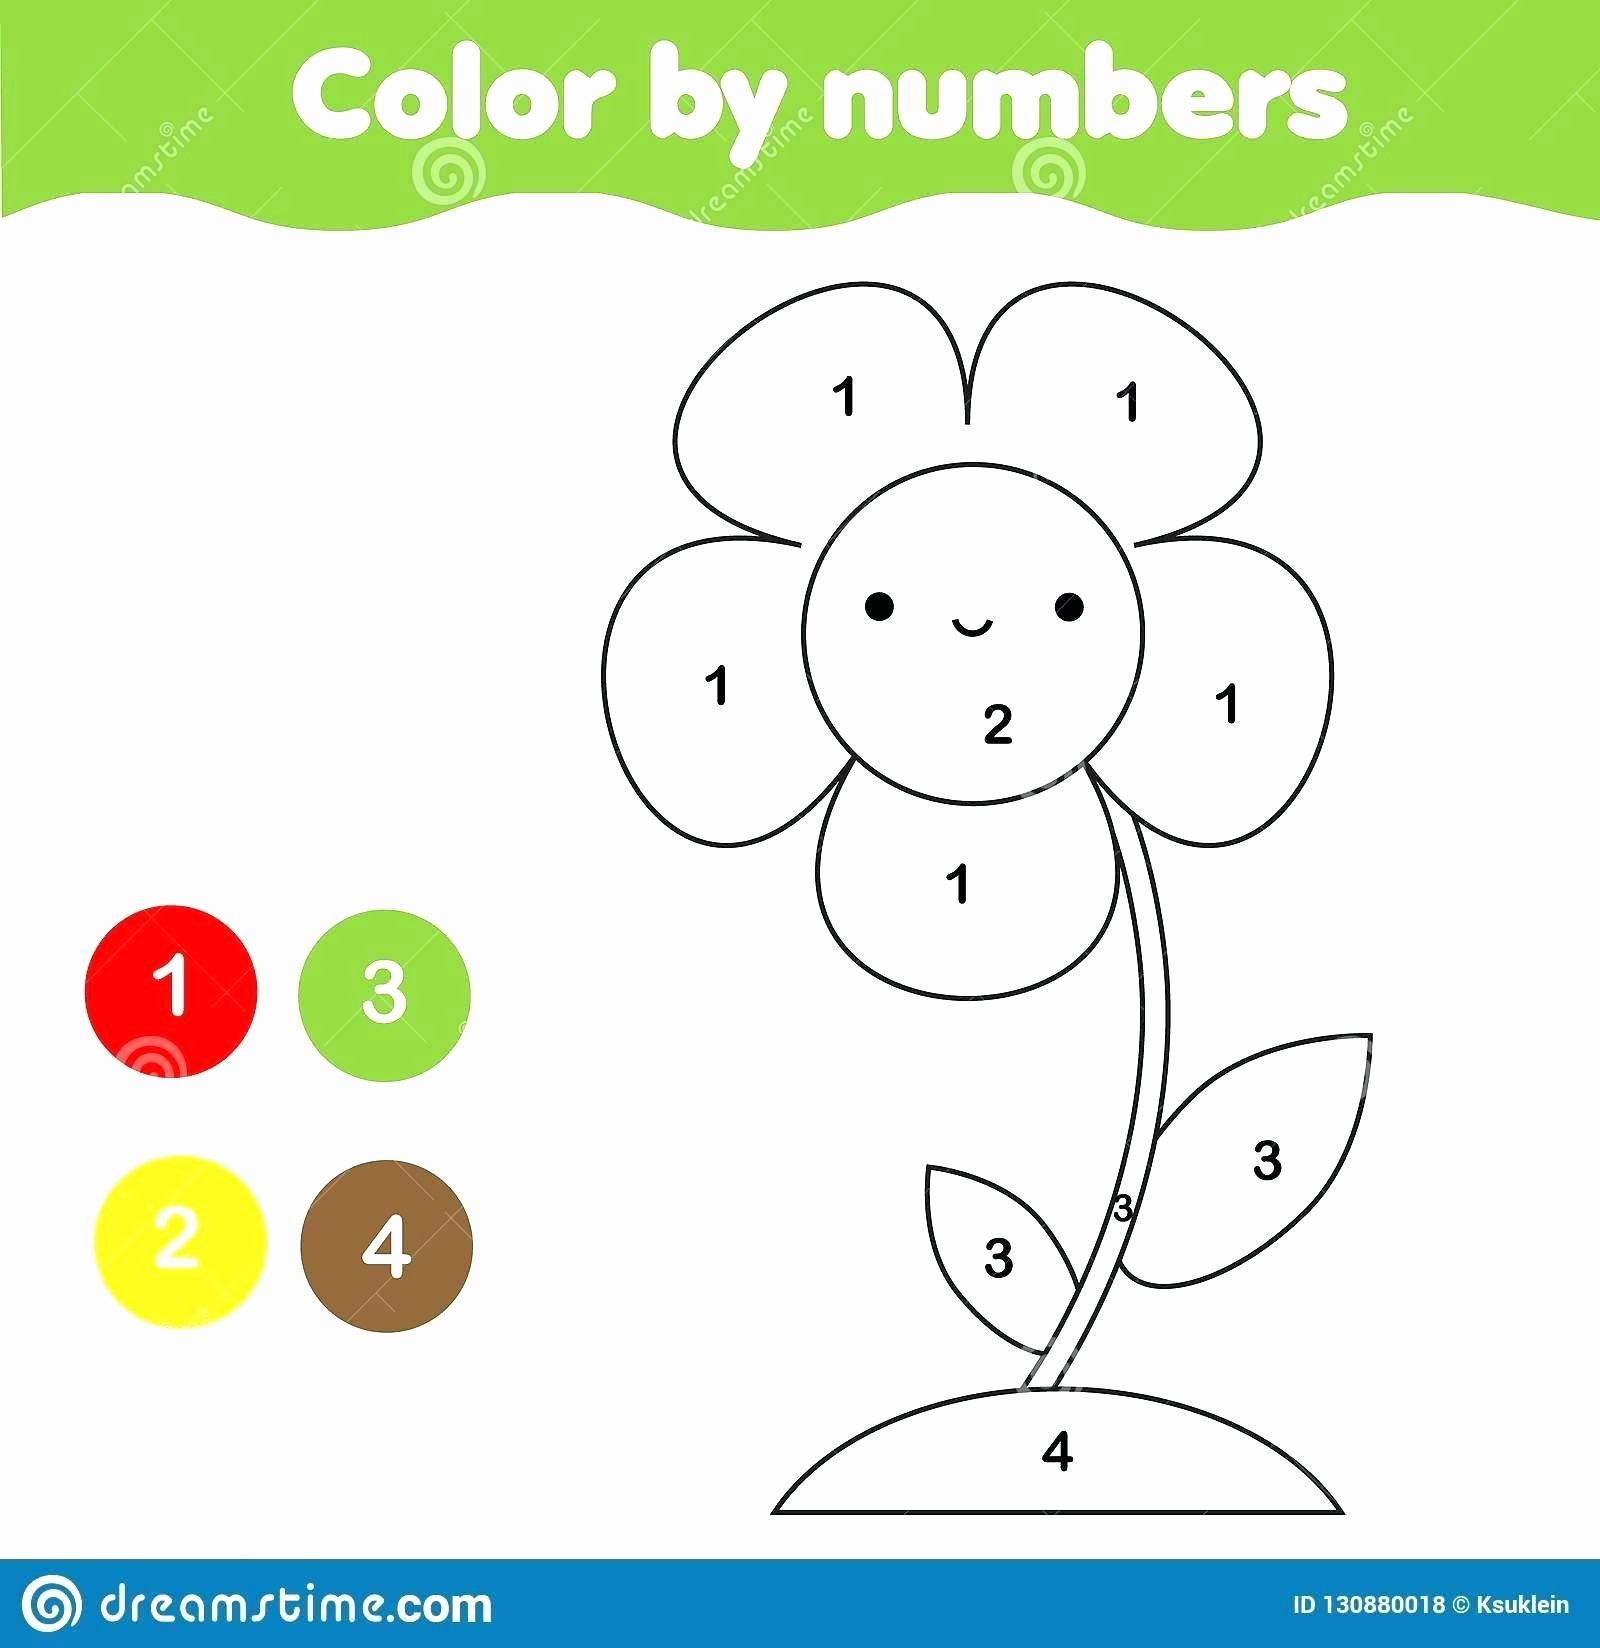 Coloring Mixing Activities Inspirational Dinosaur Coloring Pages Color By Number Ssmot Dinosaur Coloring Pages Color Activities For Toddlers Color Activities